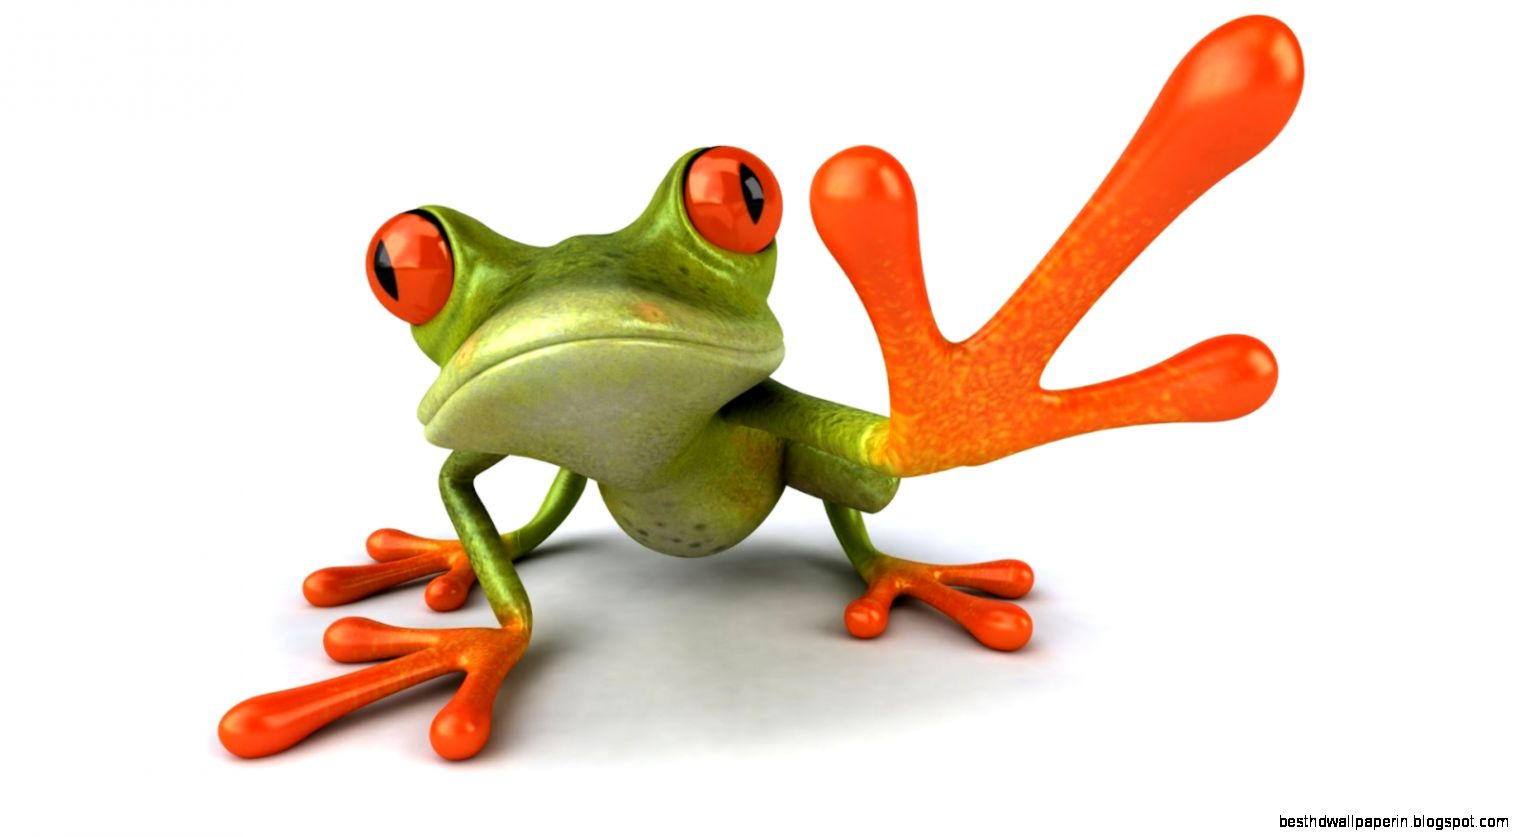 Funny Frog Pictures Wallpapers Free | Best HD Wallpapers